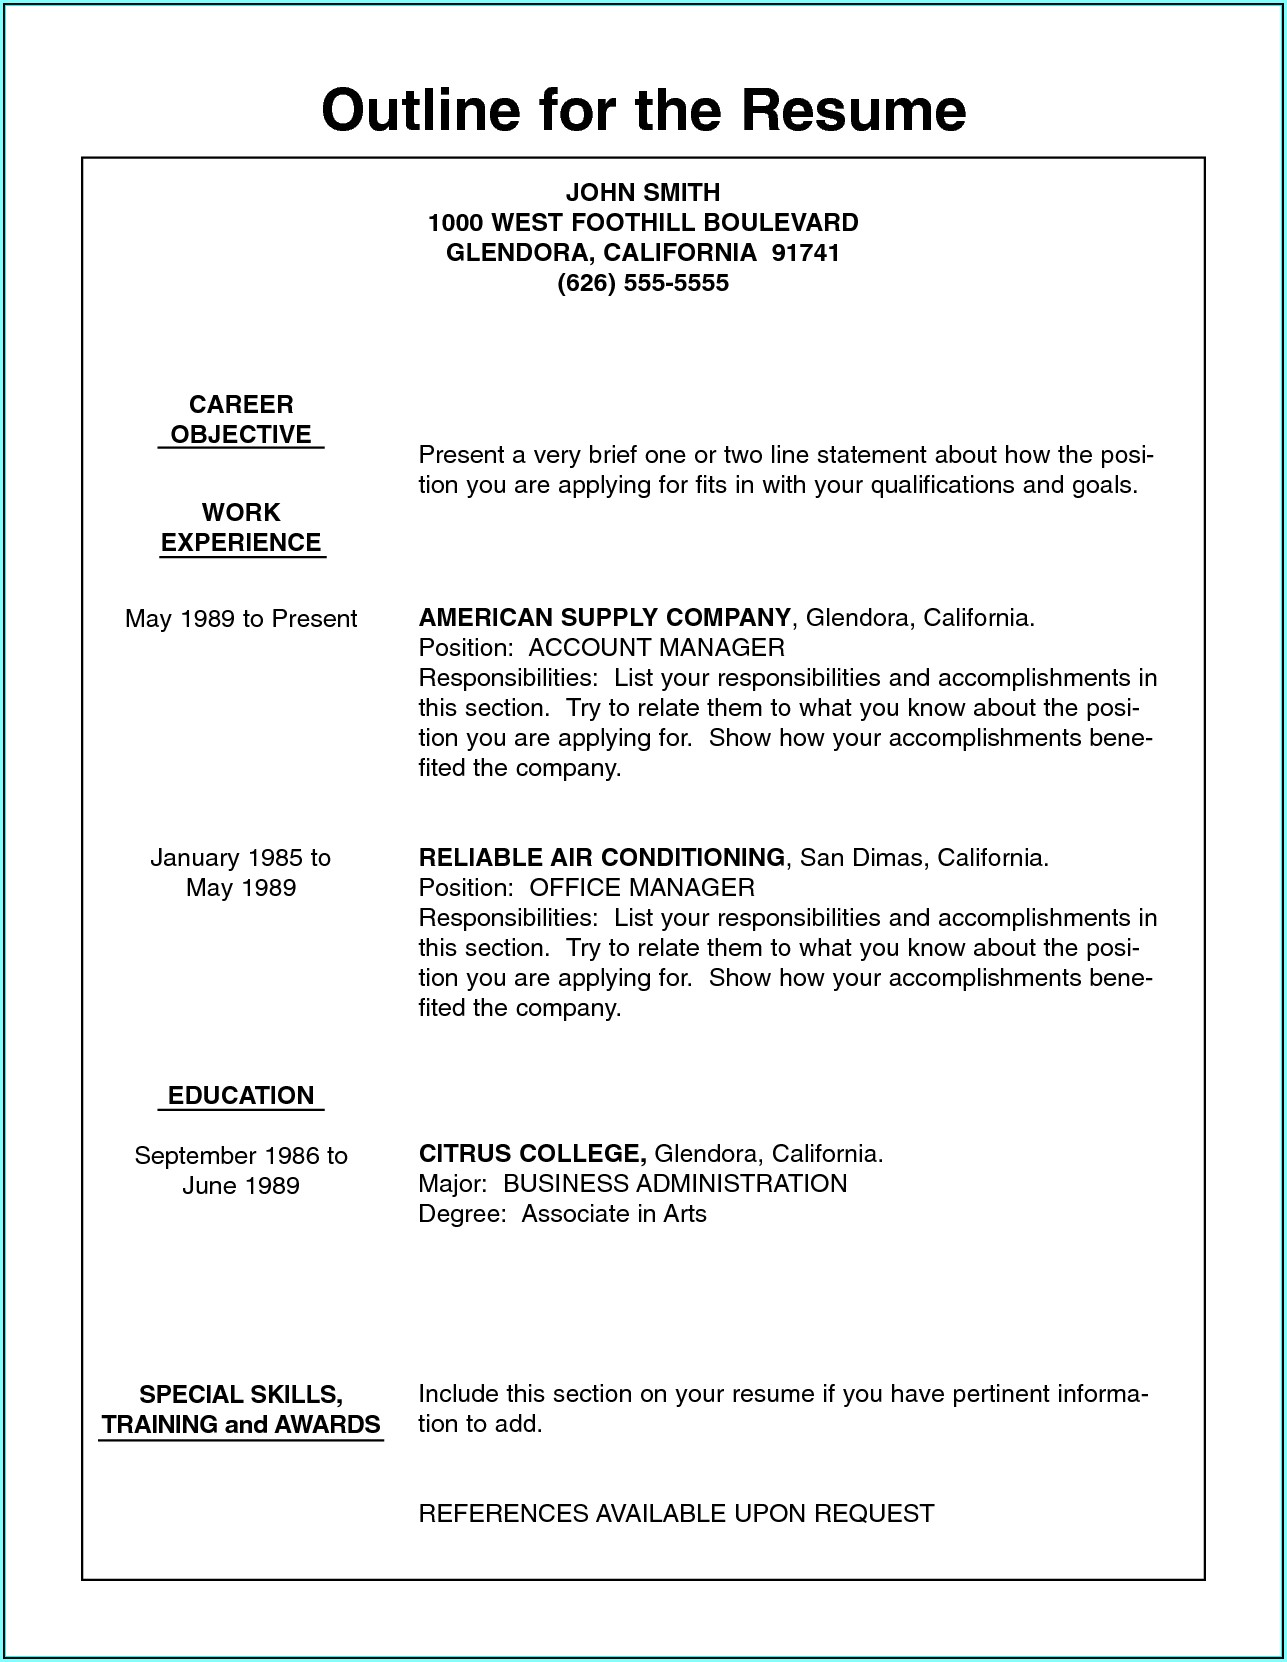 Outlines For Resumes Examples